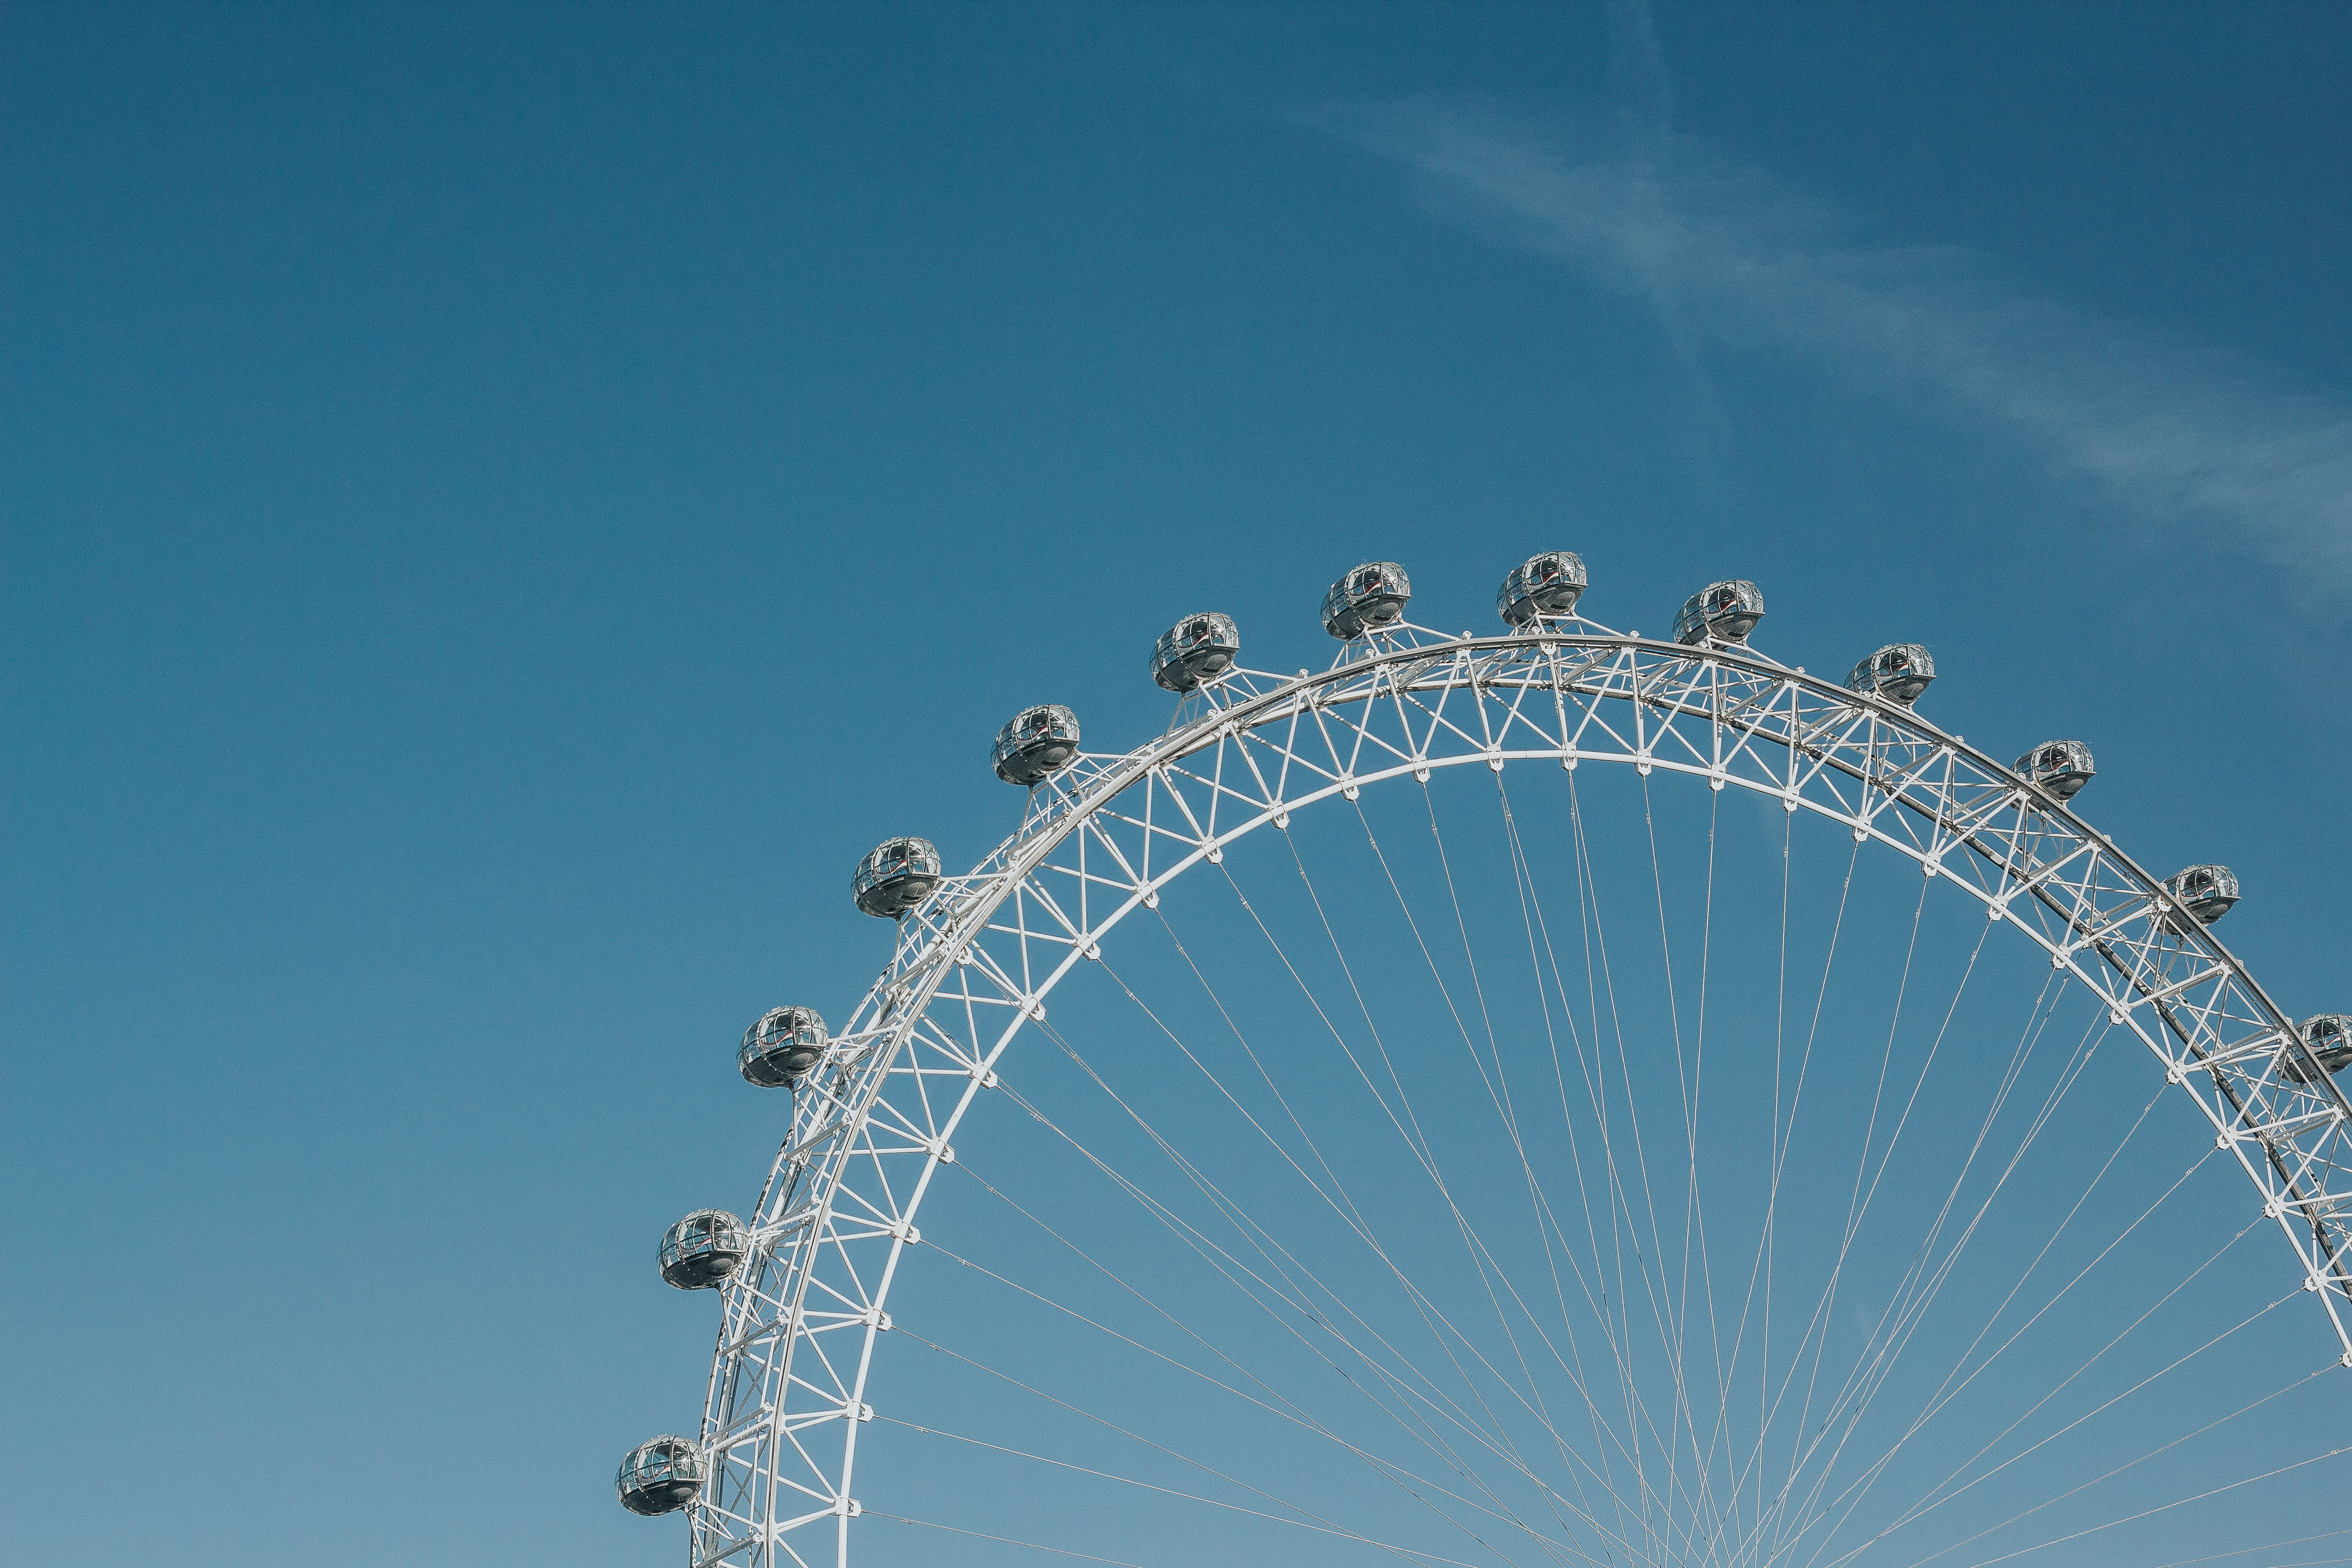 gray ferris wheel during day time